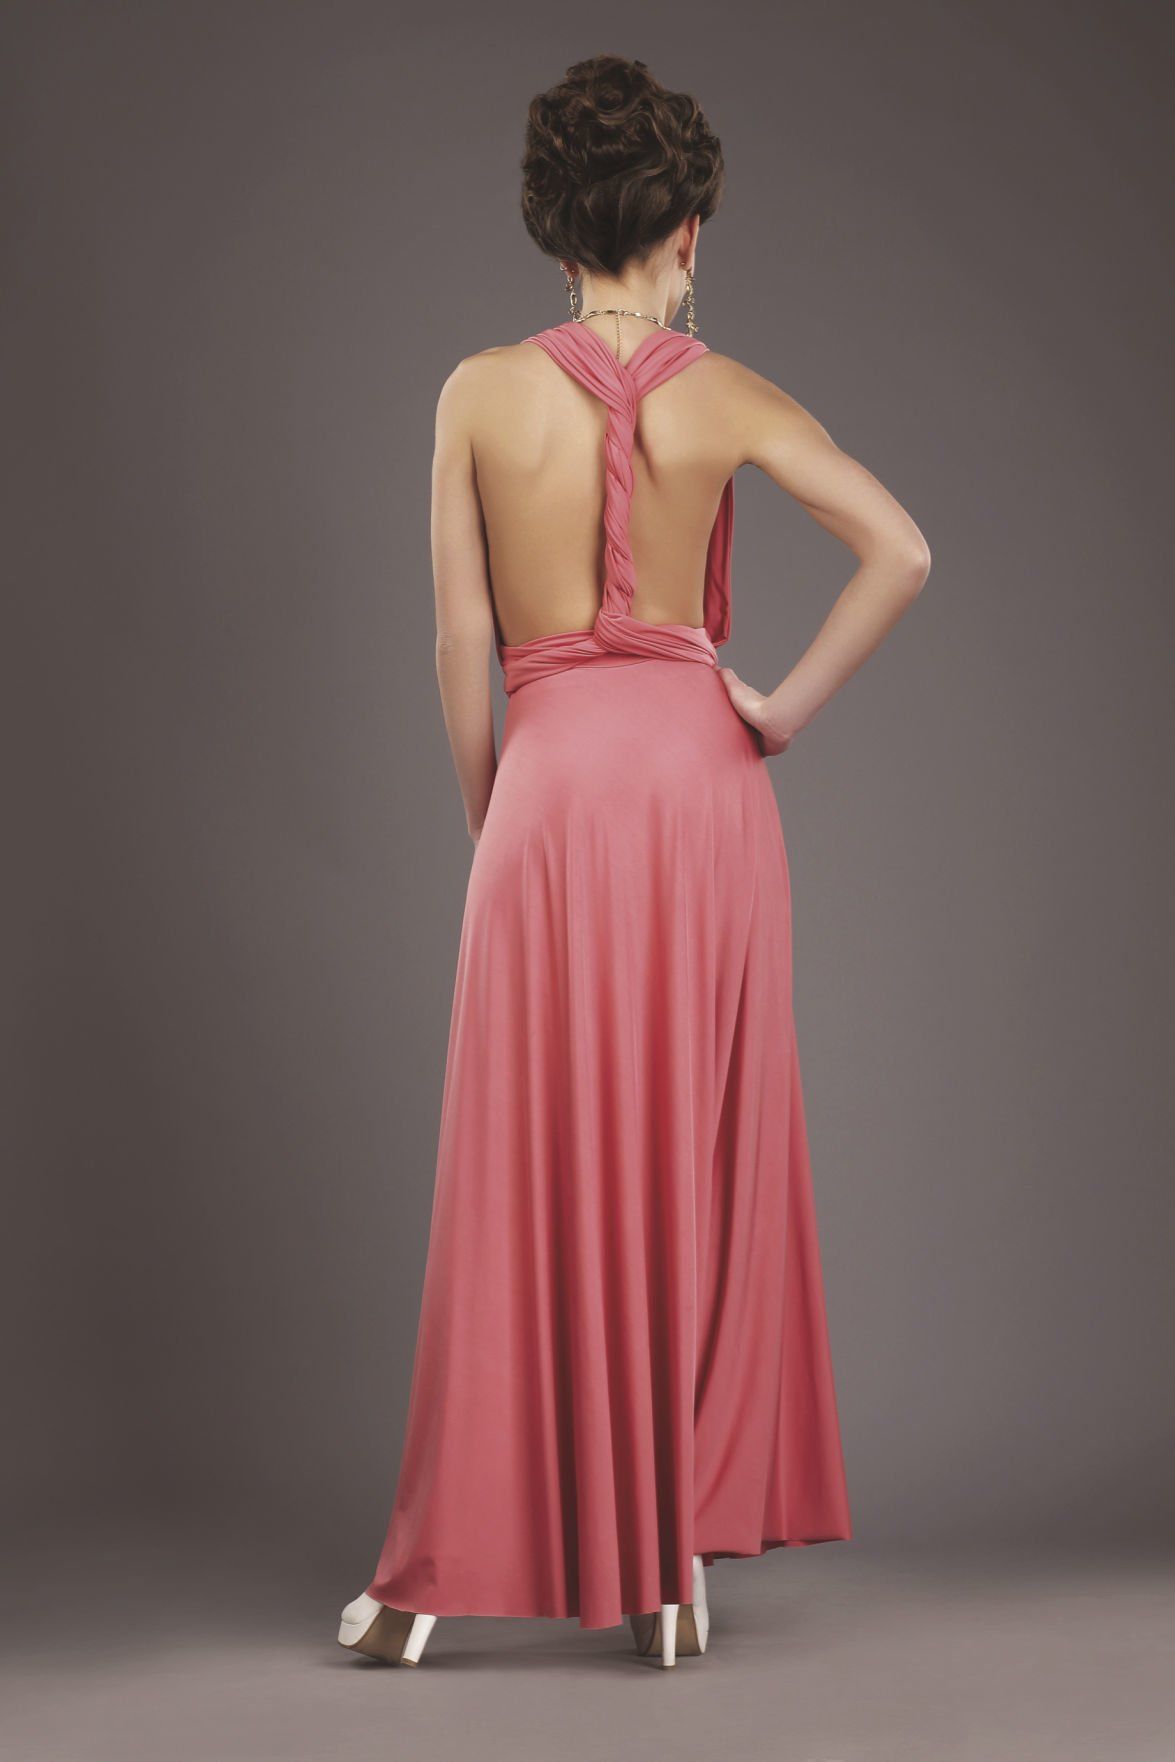 Rear View of Lady in Evening Gown